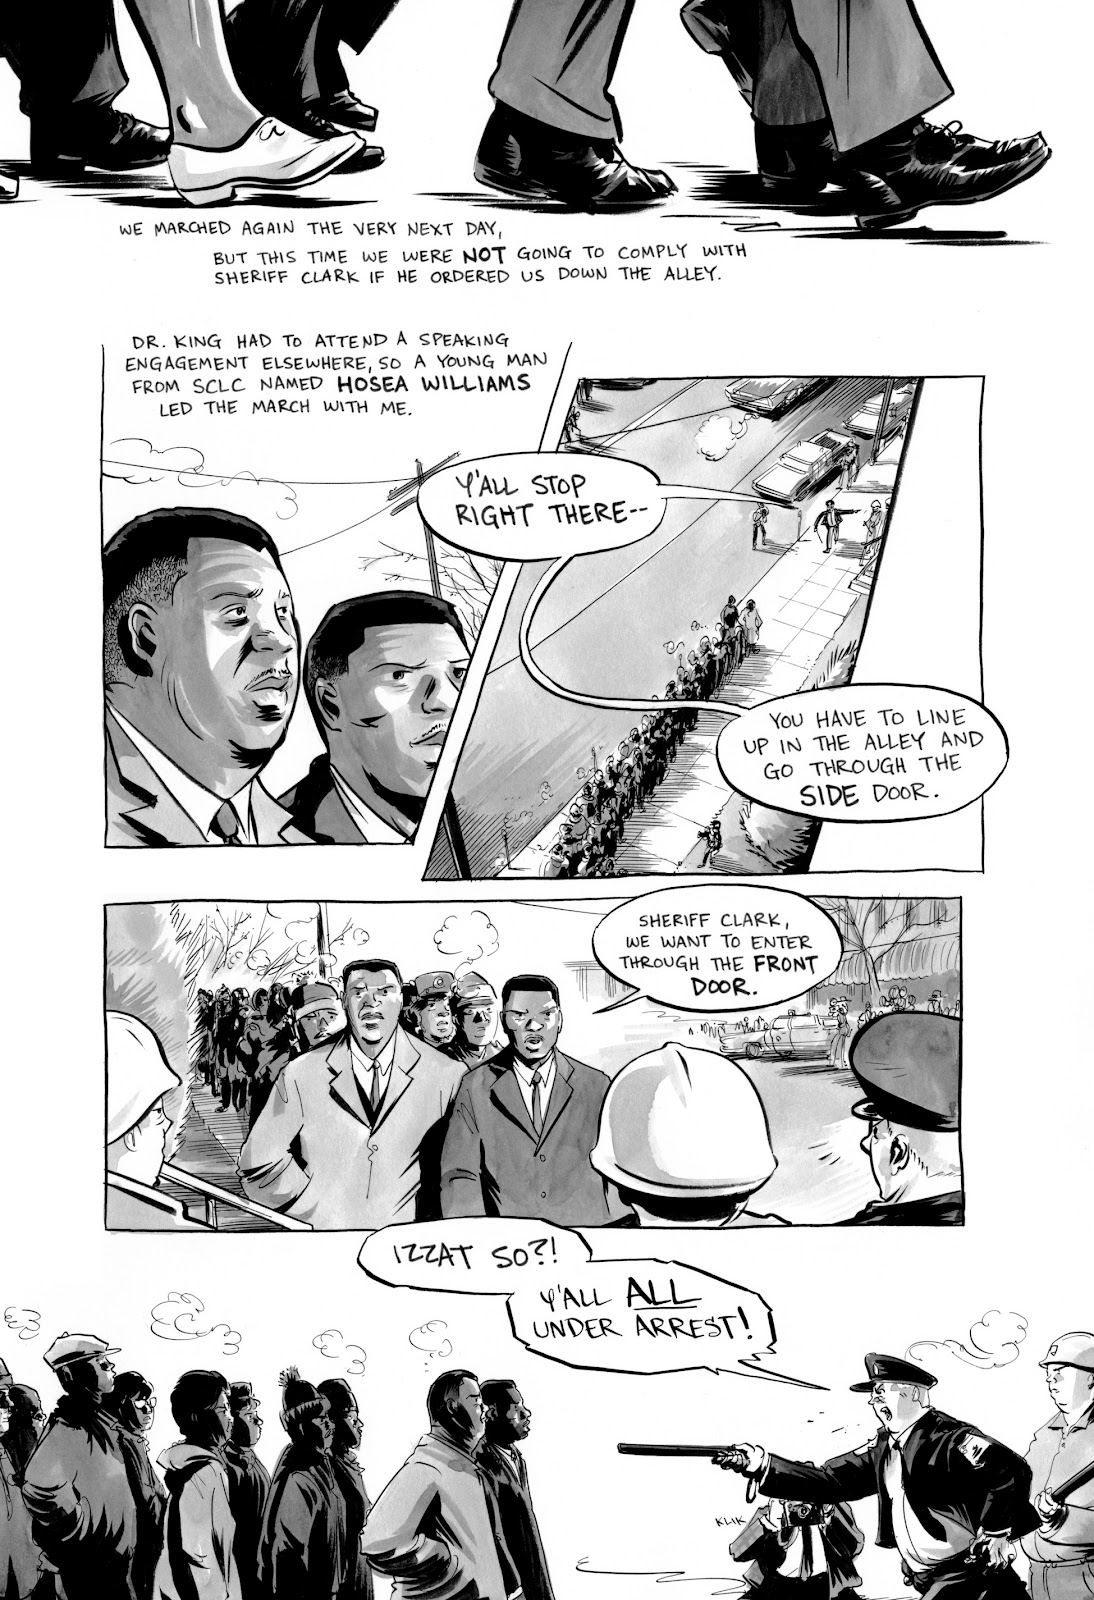 March 3 Page 148